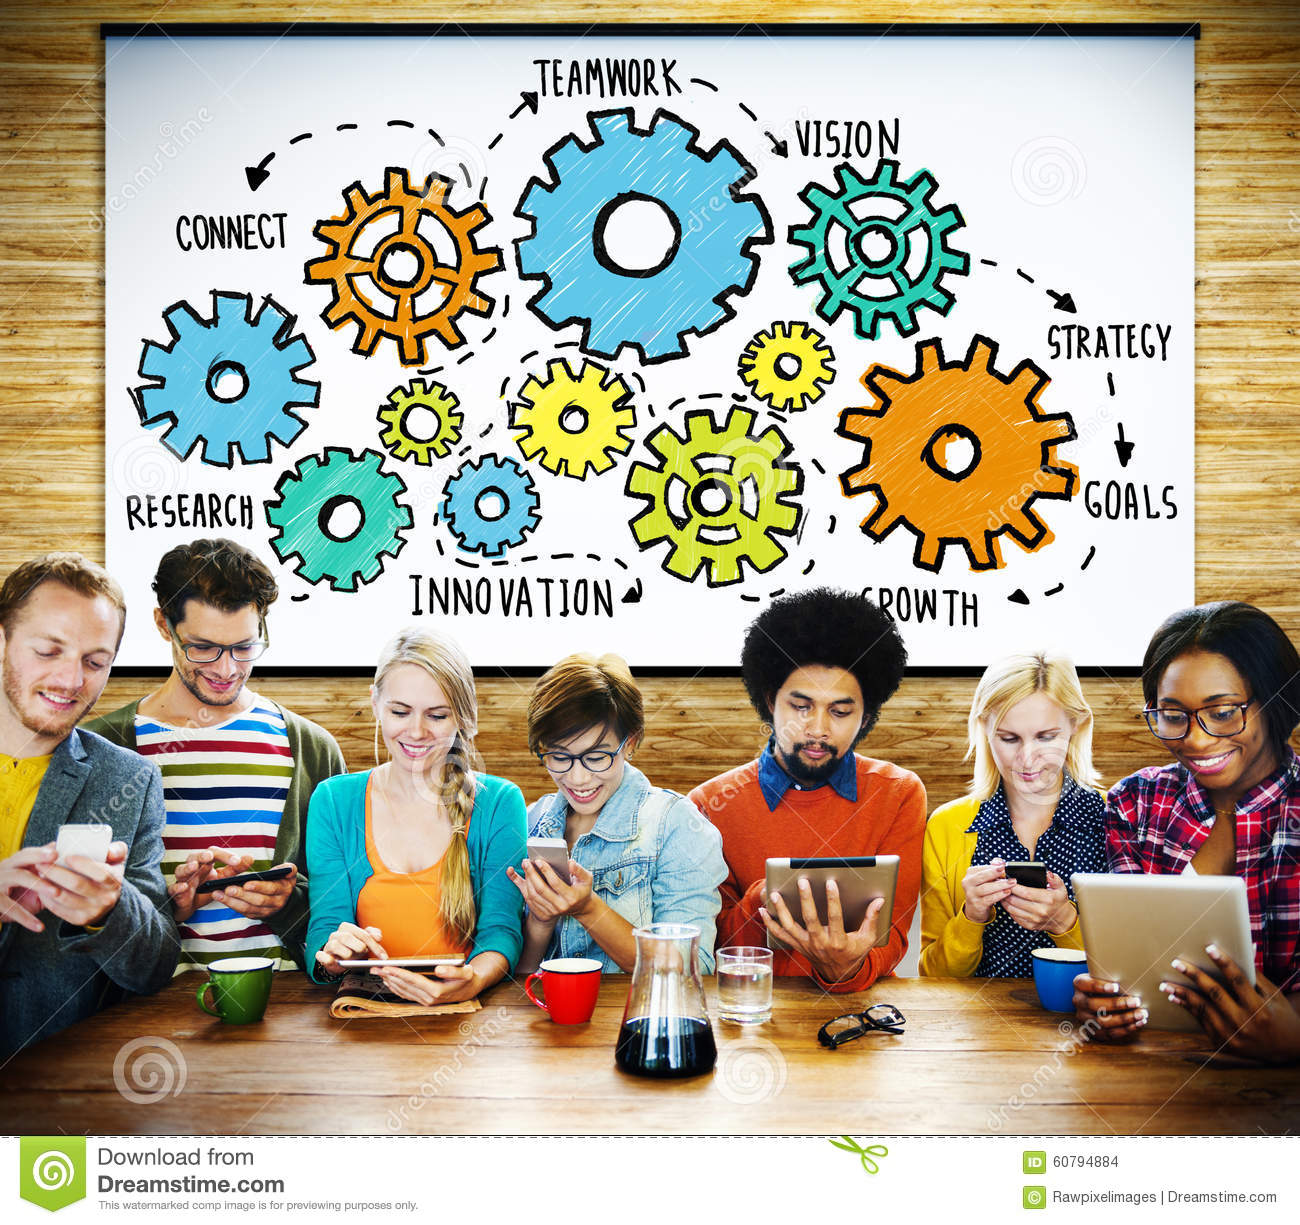 Tecnologia Conce di Team Functionality Industry Teamwork Connection